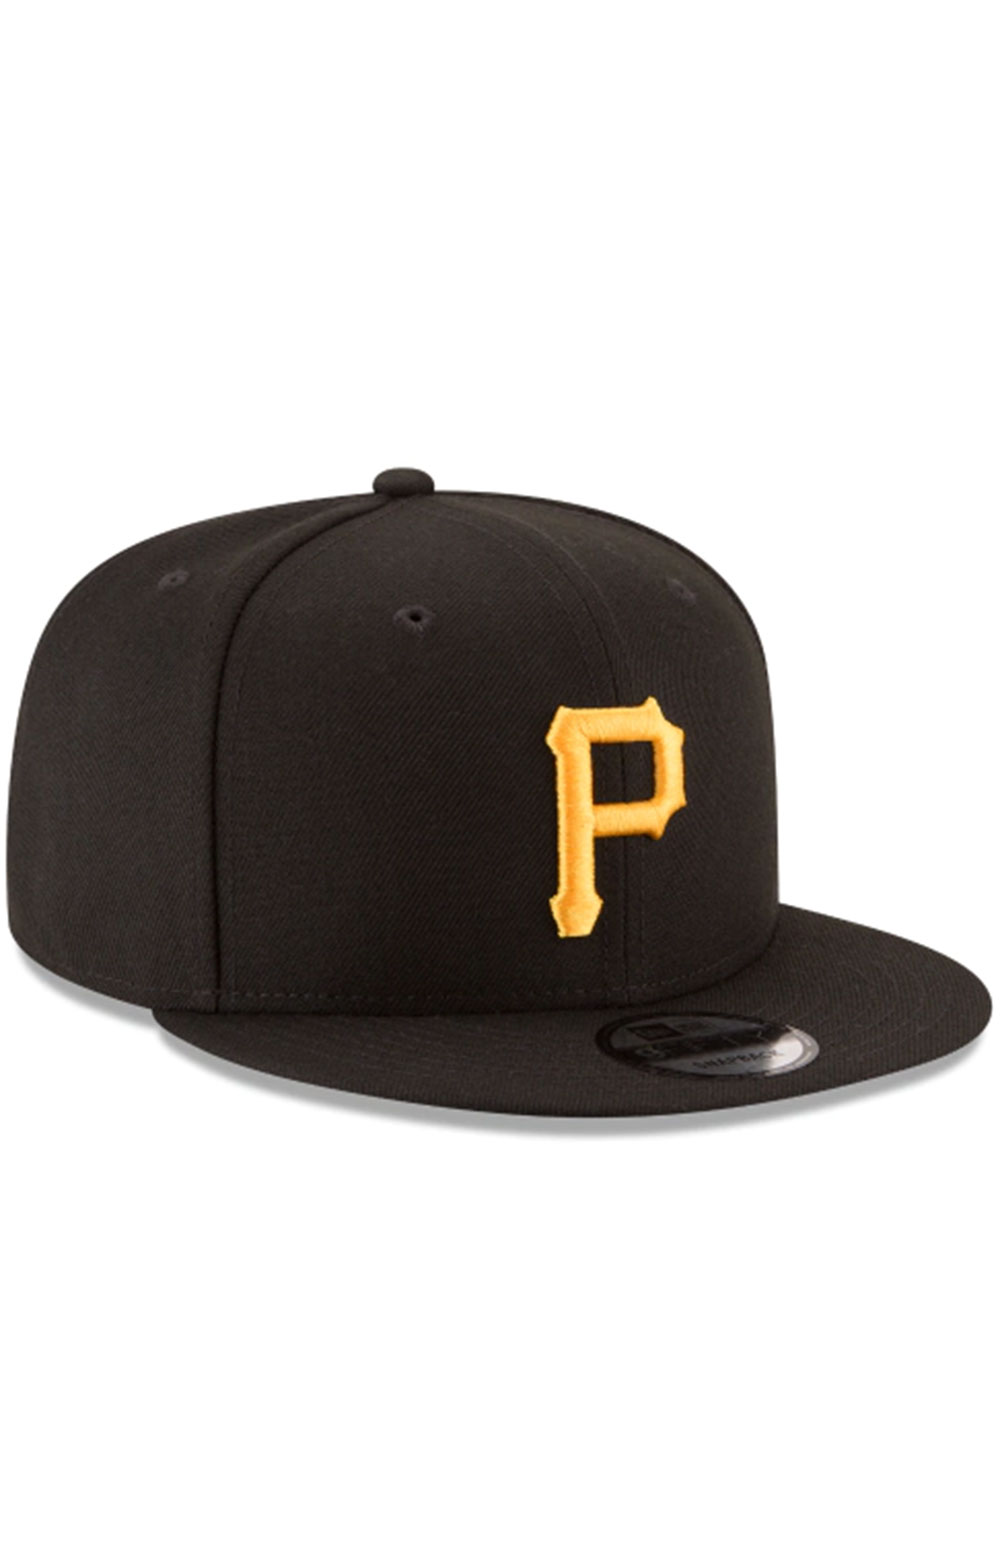 Pittsburgh Pirates Team Color Basic 9Fifty Snap-Back Hat  6